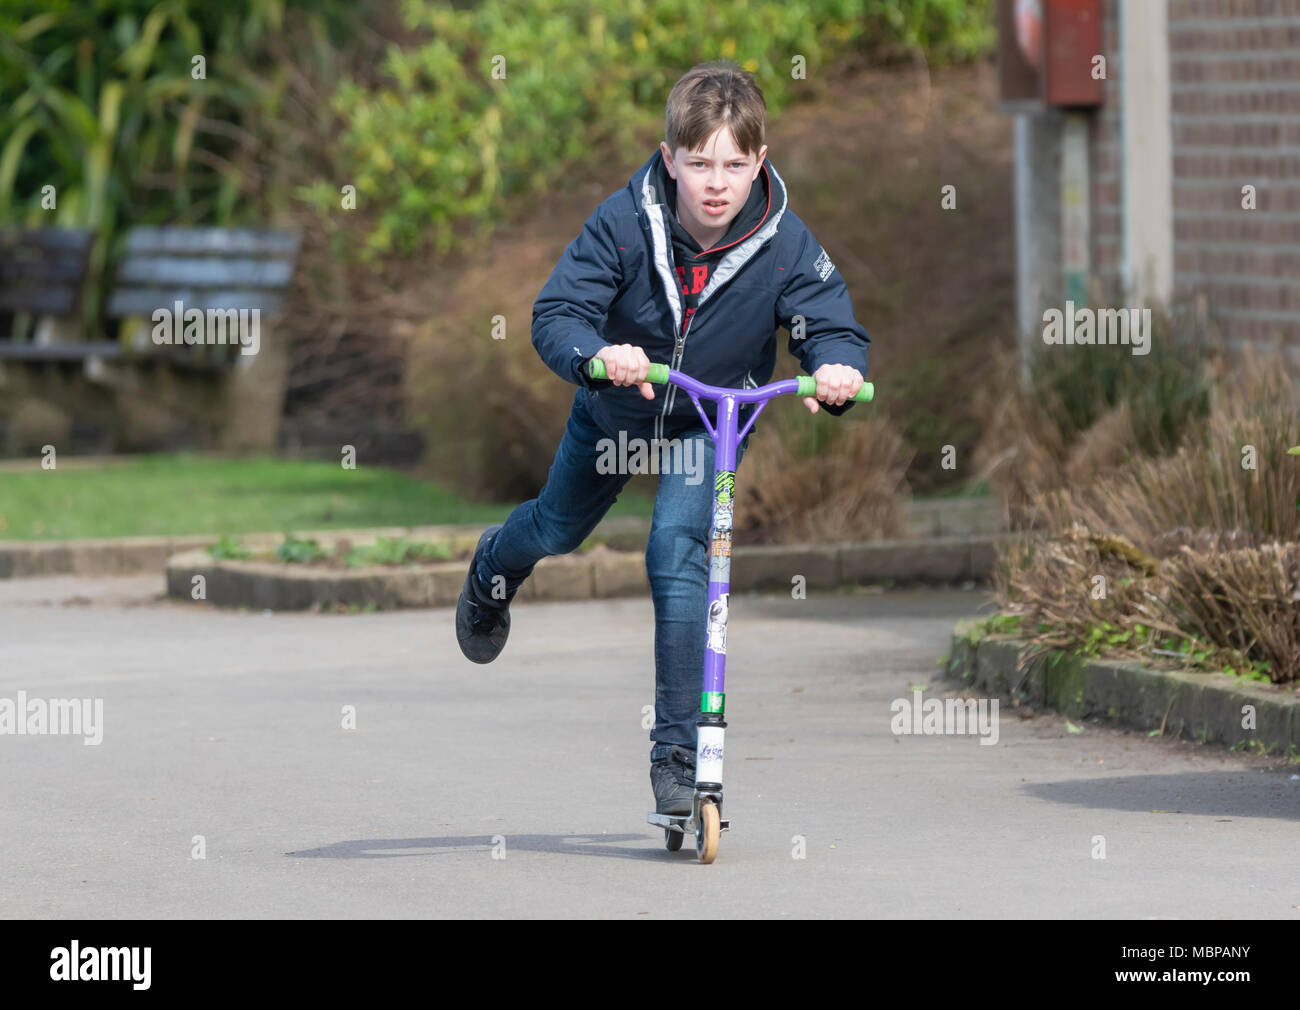 Young boy riding on a scooter around a park in the UK. - Stock Image